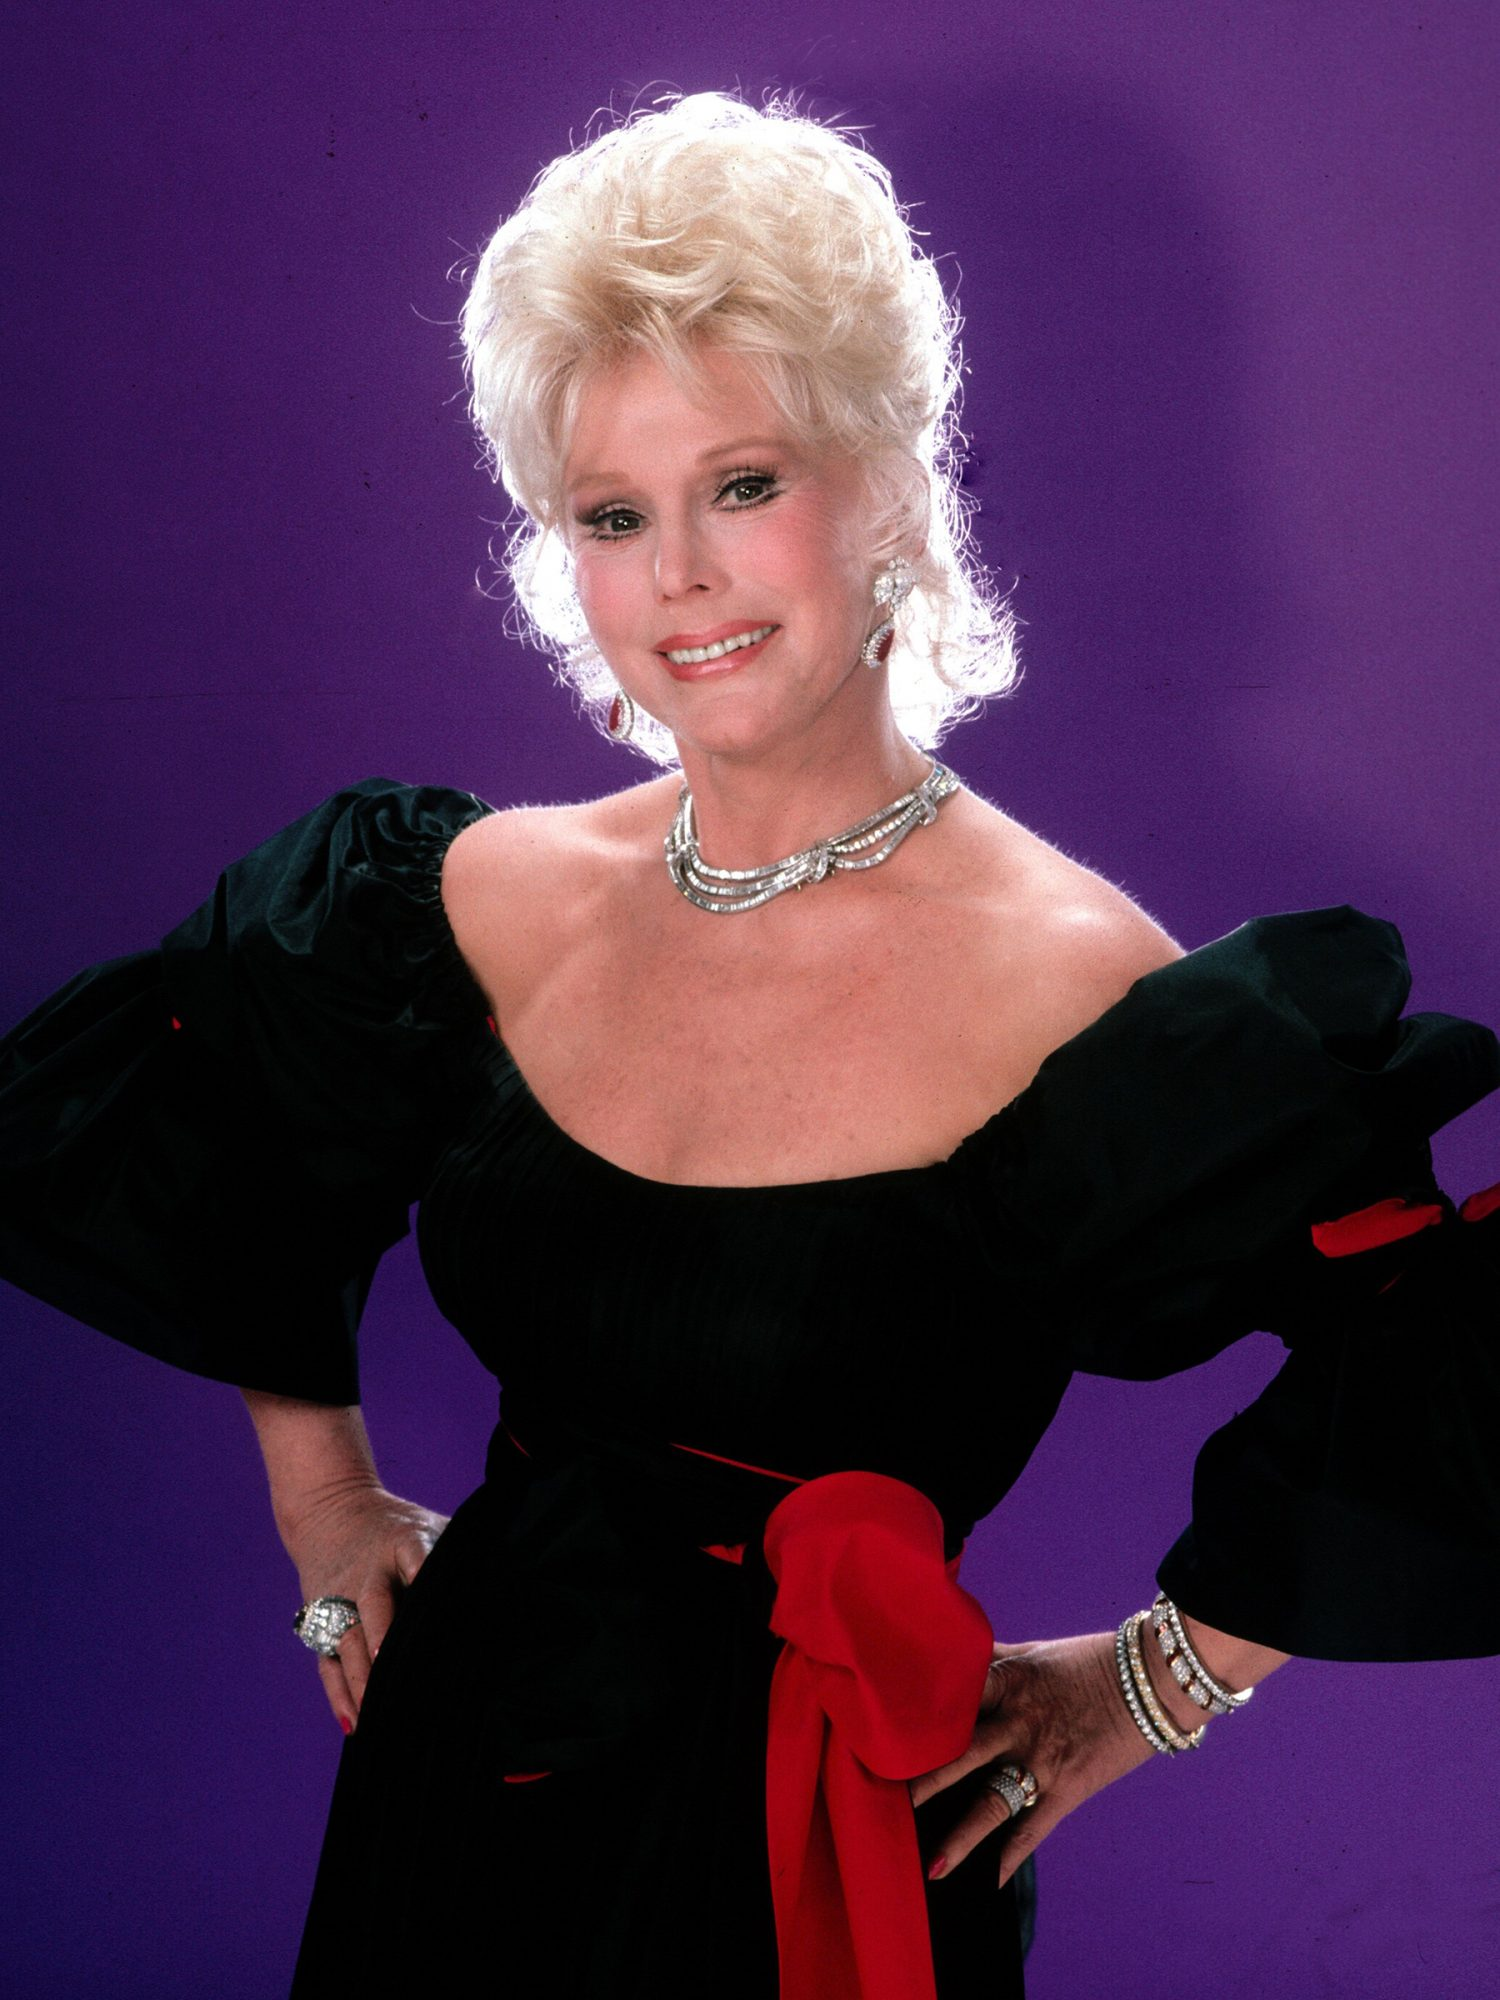 Zsa Zsa Gabor Portrait Session